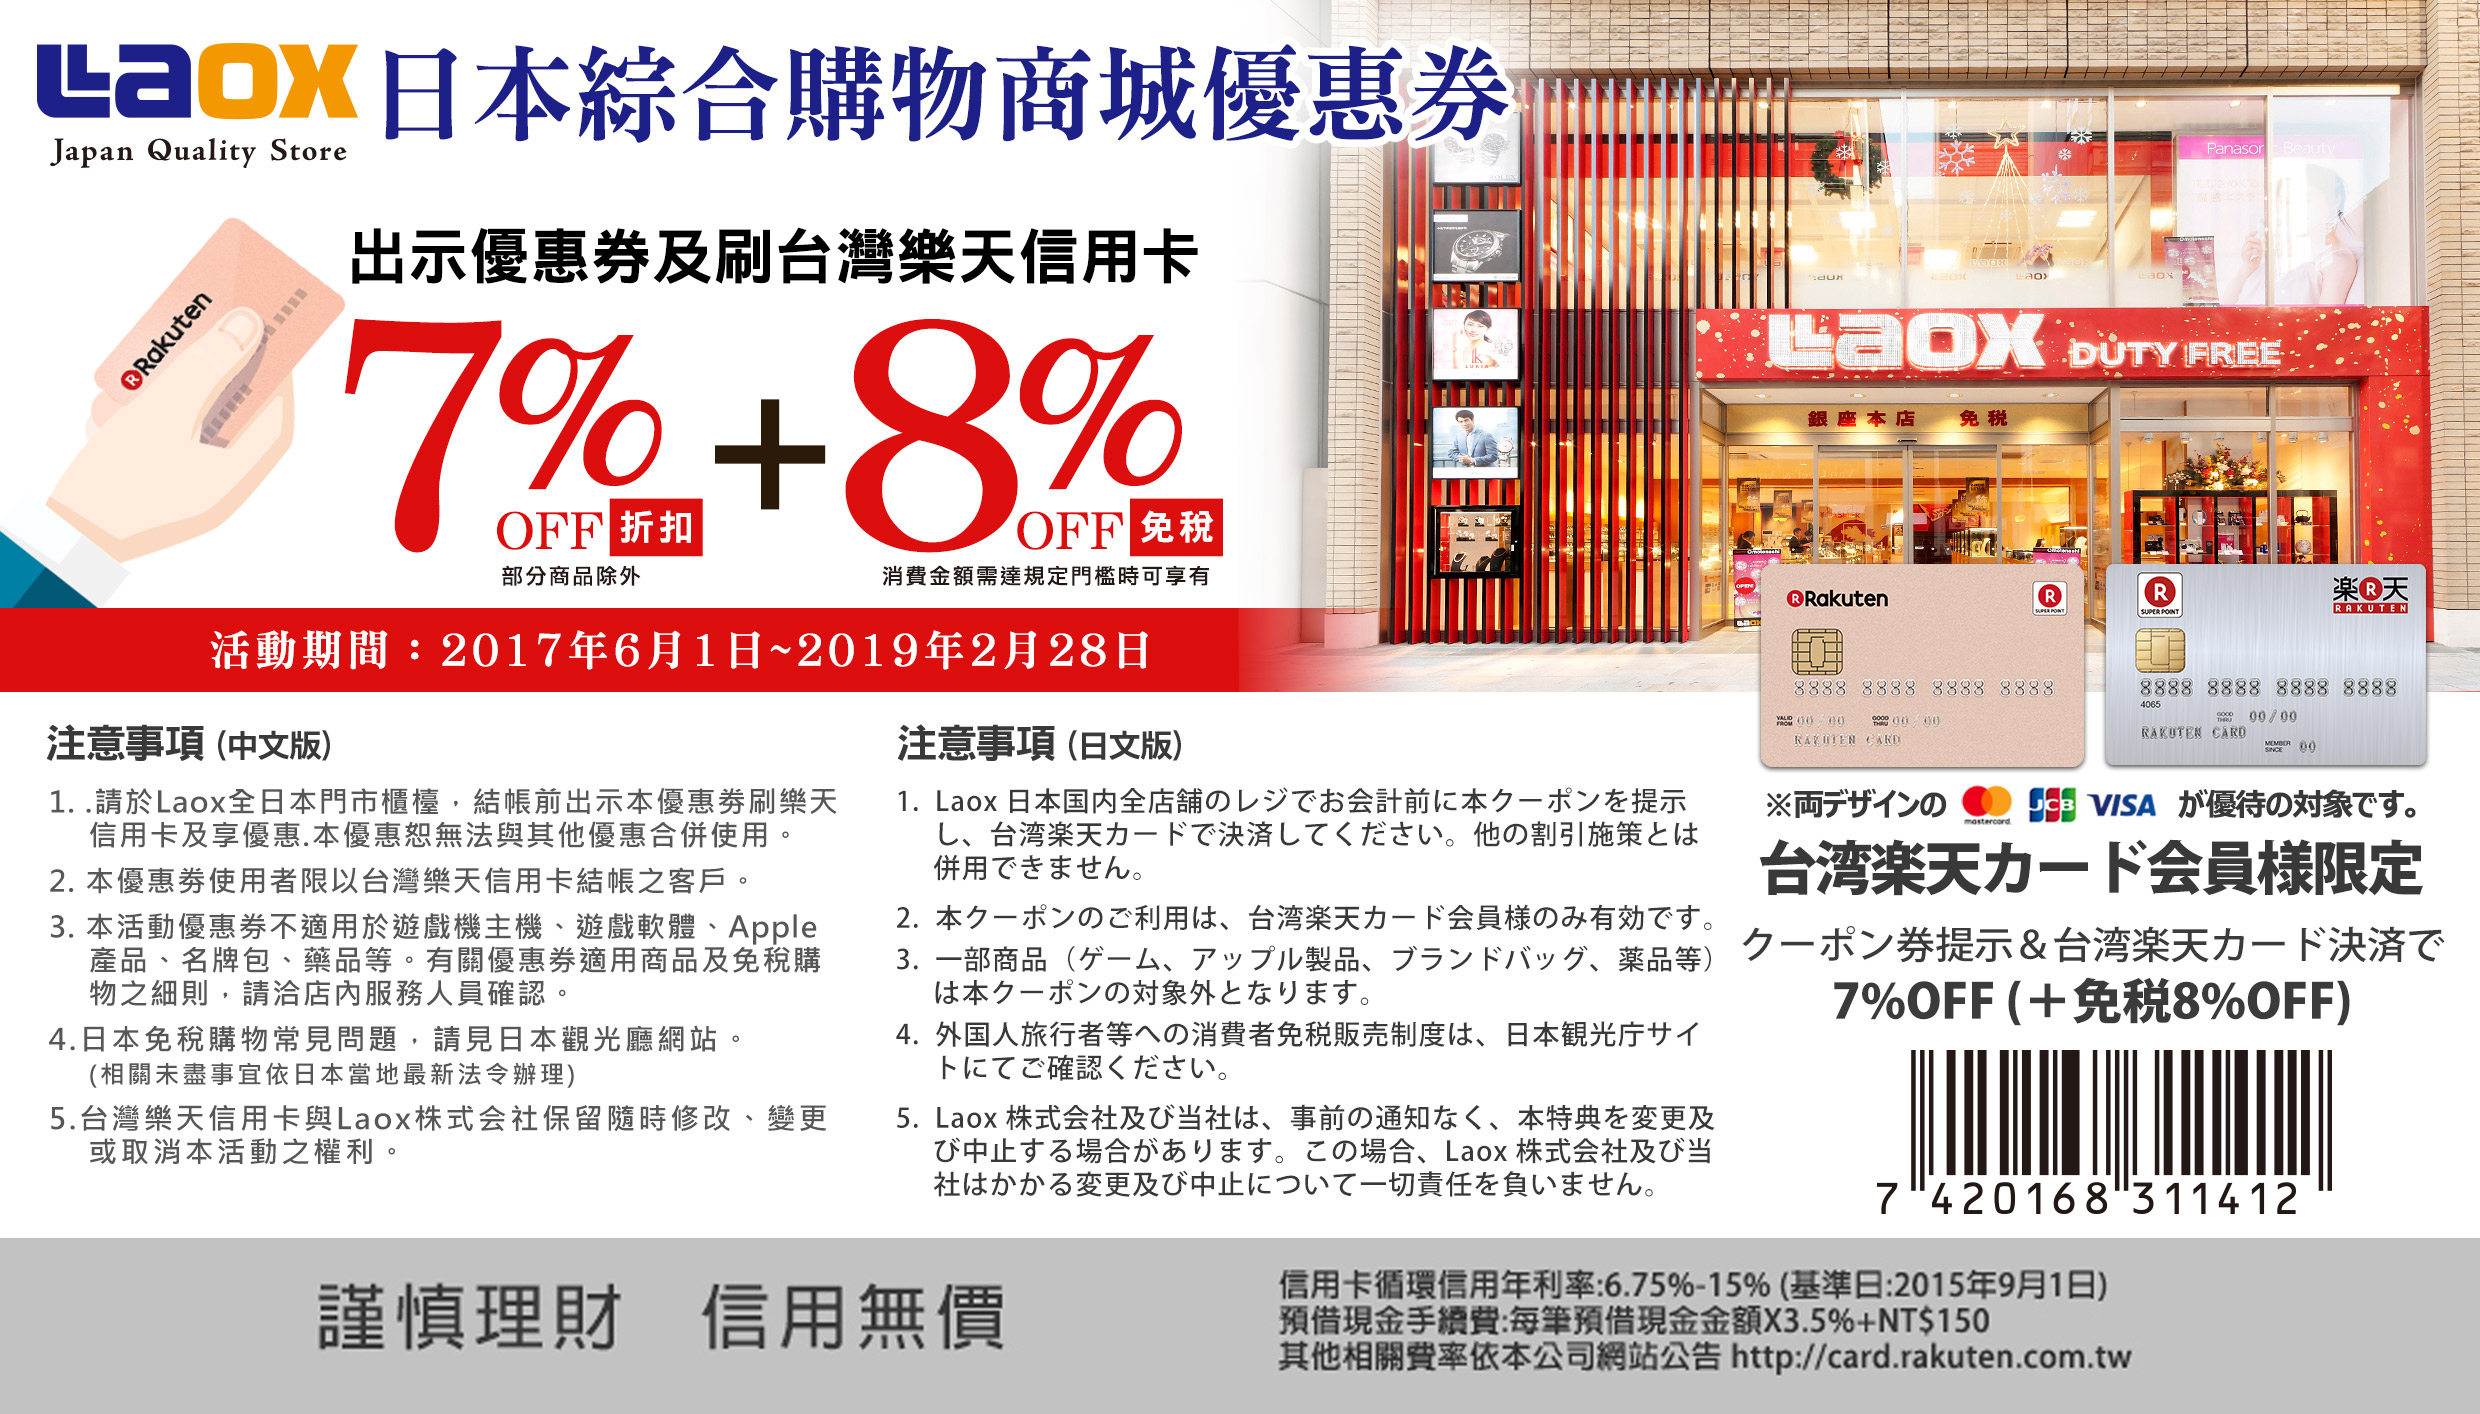 Rakuten coupons 2019